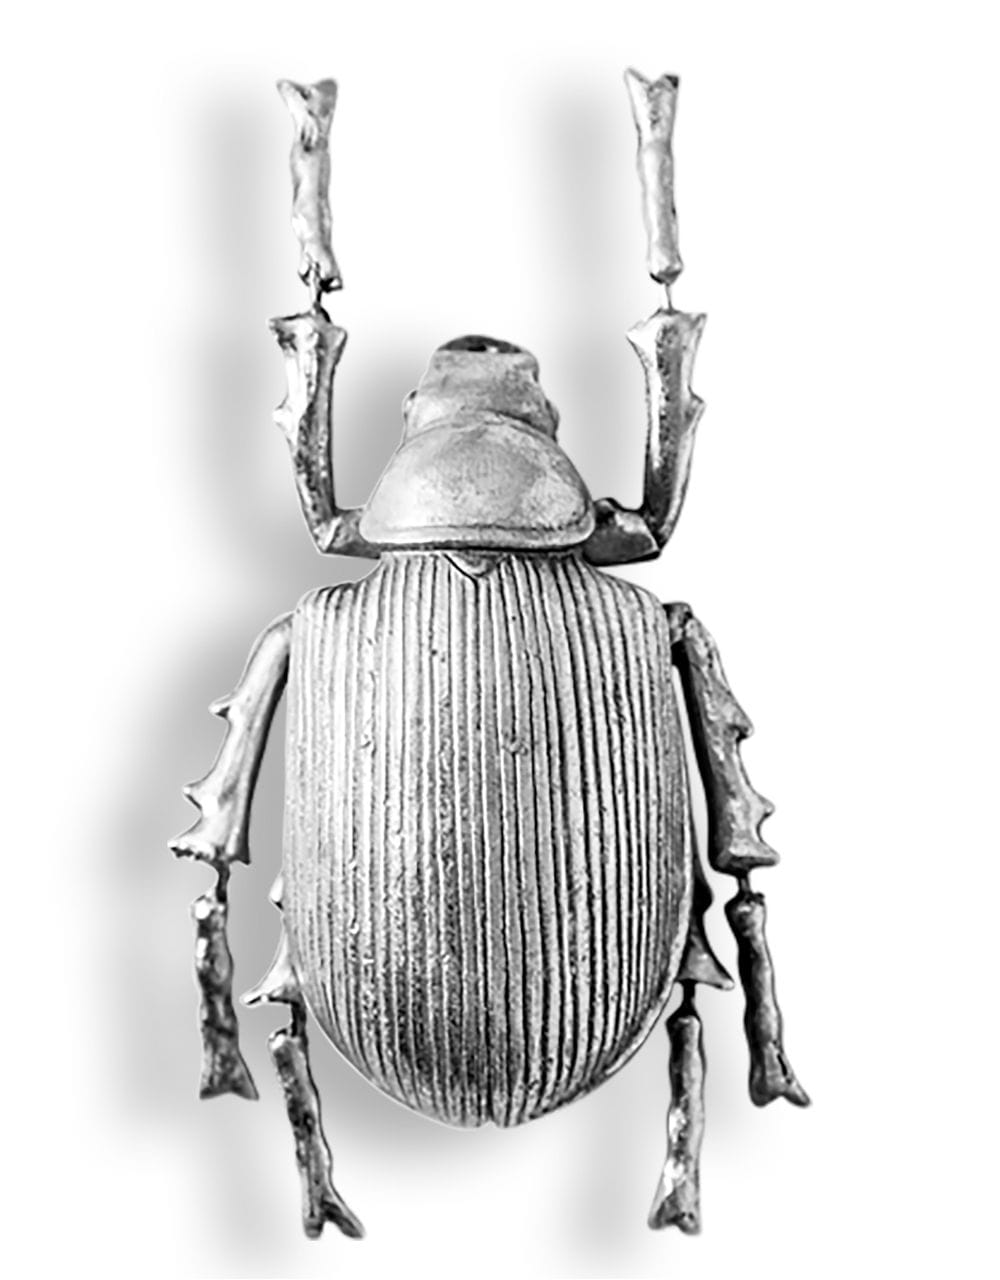 Small Silver Beetle Wall Decor - €49.00 | L22xW11xD7.5cm